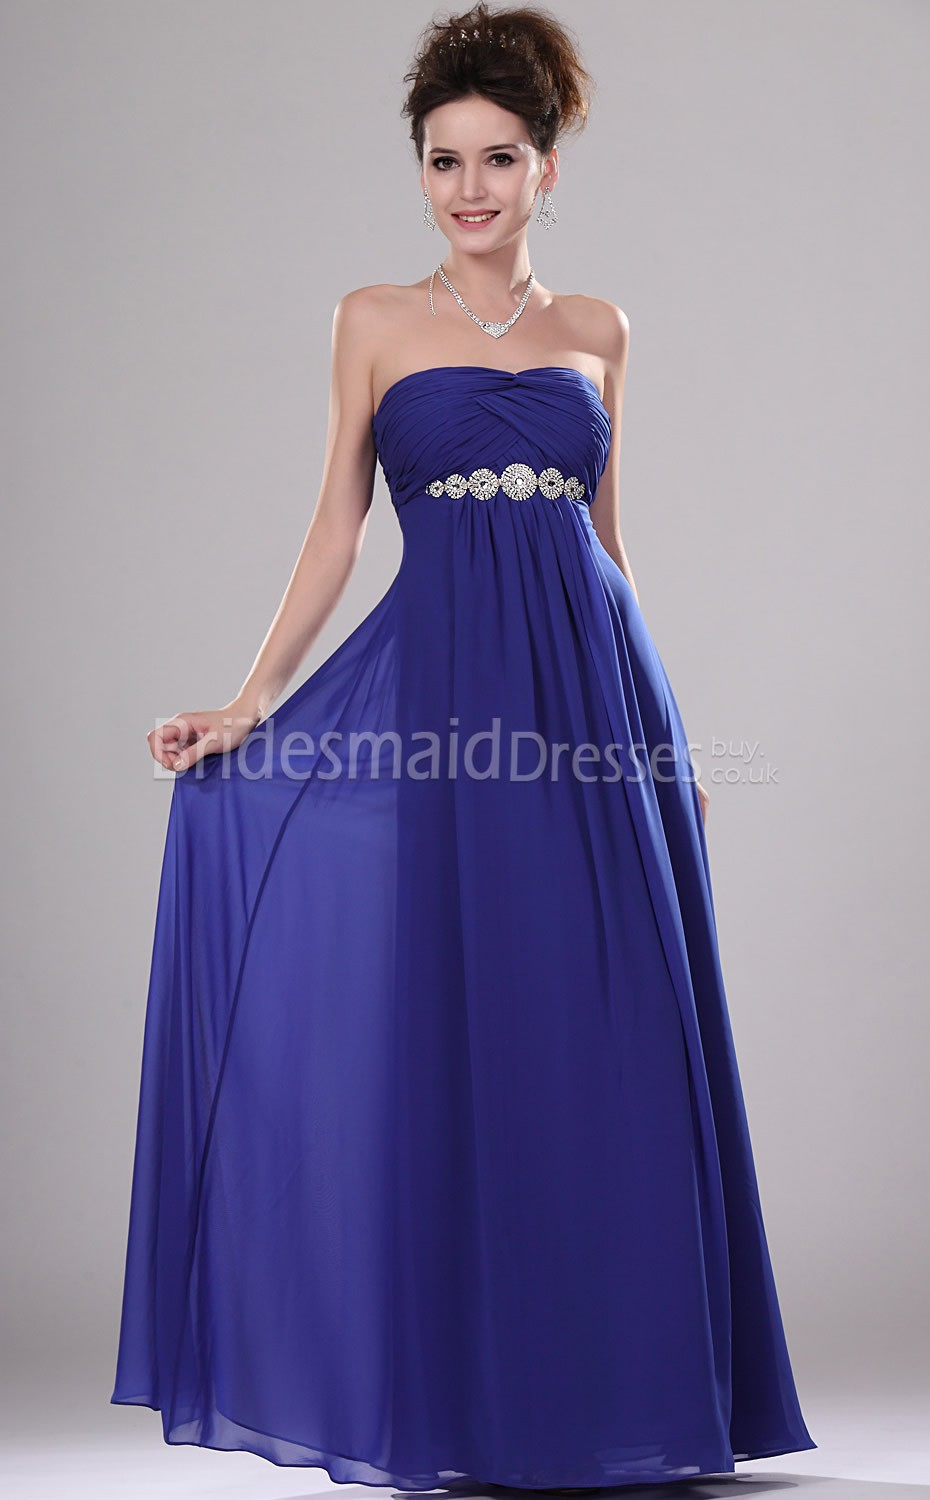 royal blue wedding dresses royal blue bridesmaid dresses uk 2014 2015 fashion 7161